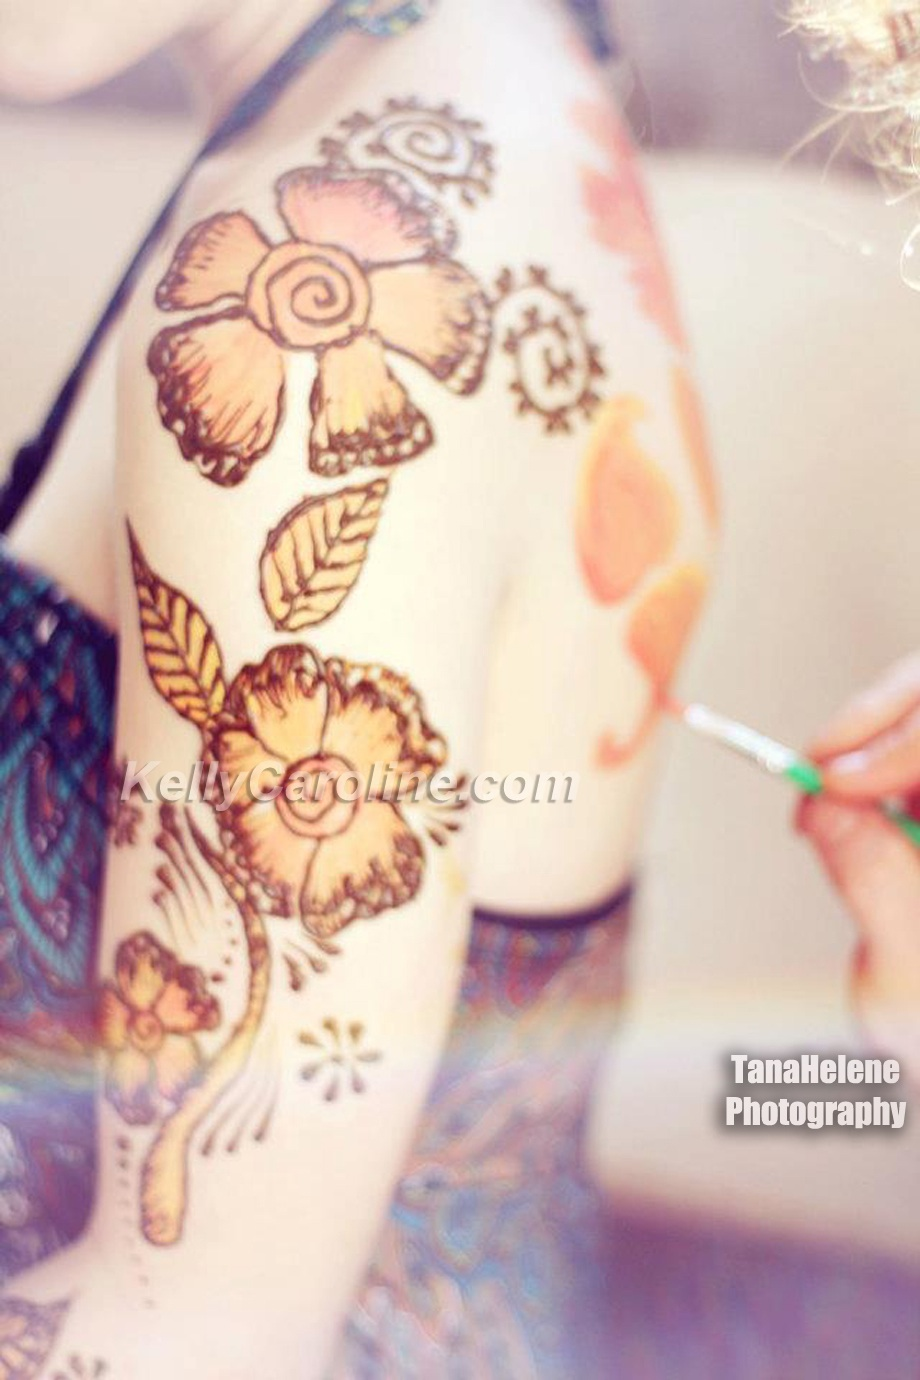 henna tattoo artist kelly caroline